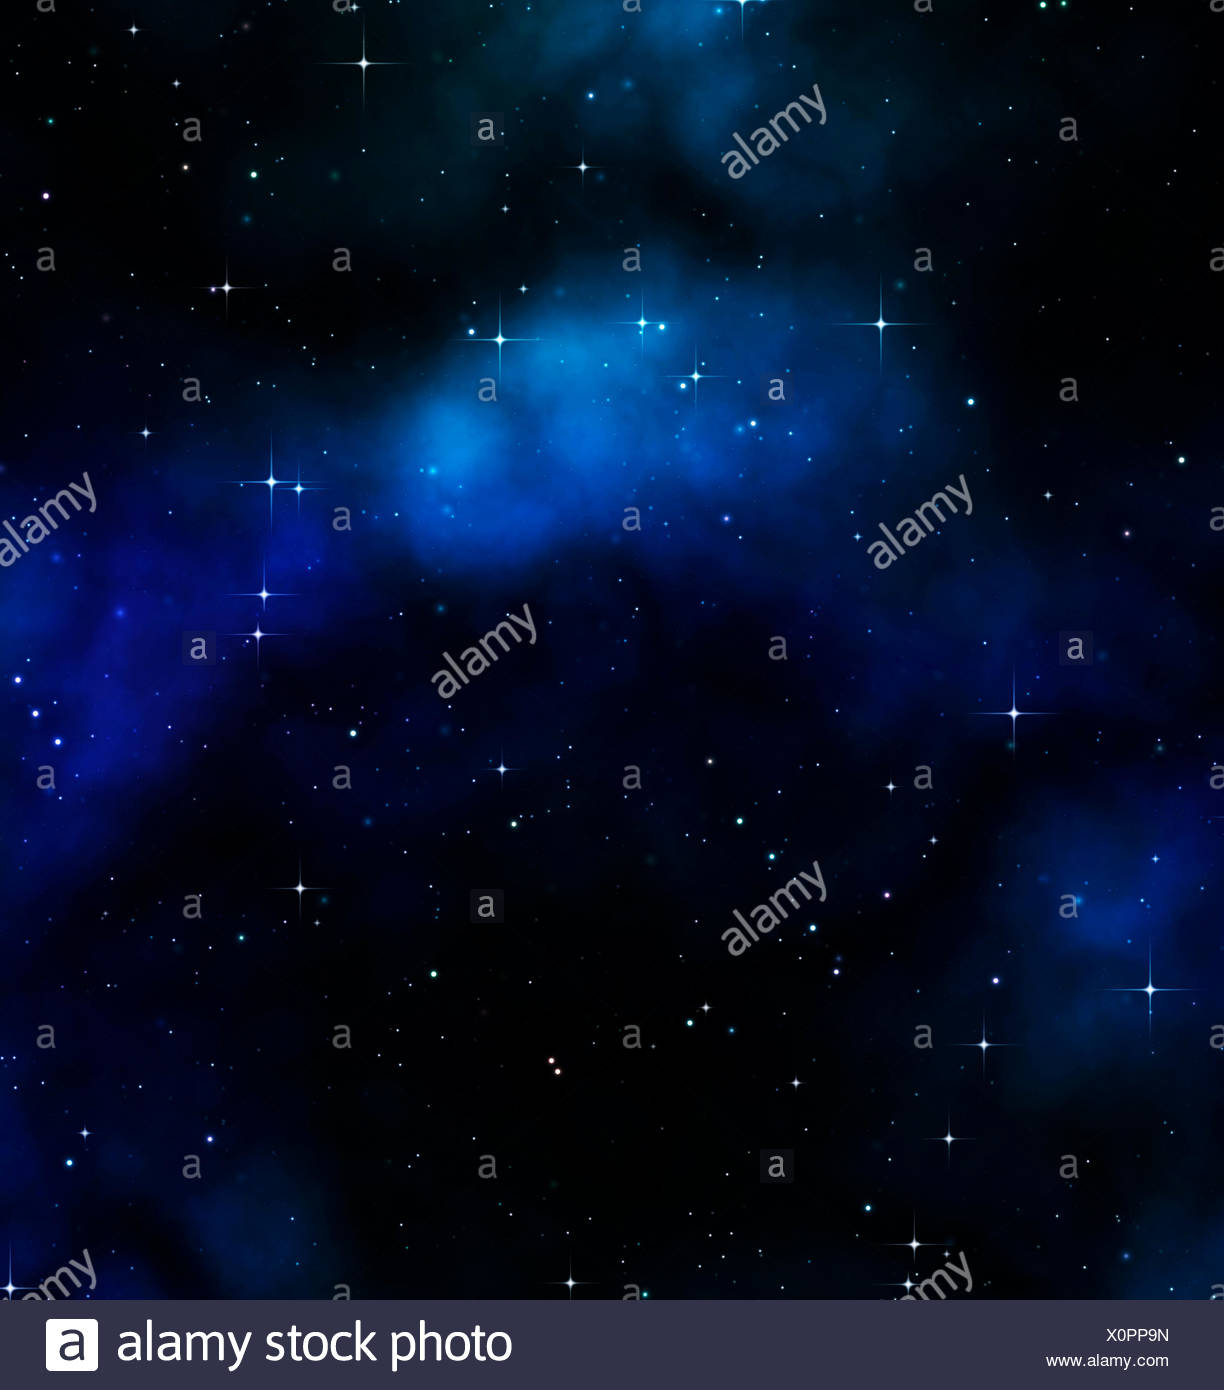 art space science - Stock Image